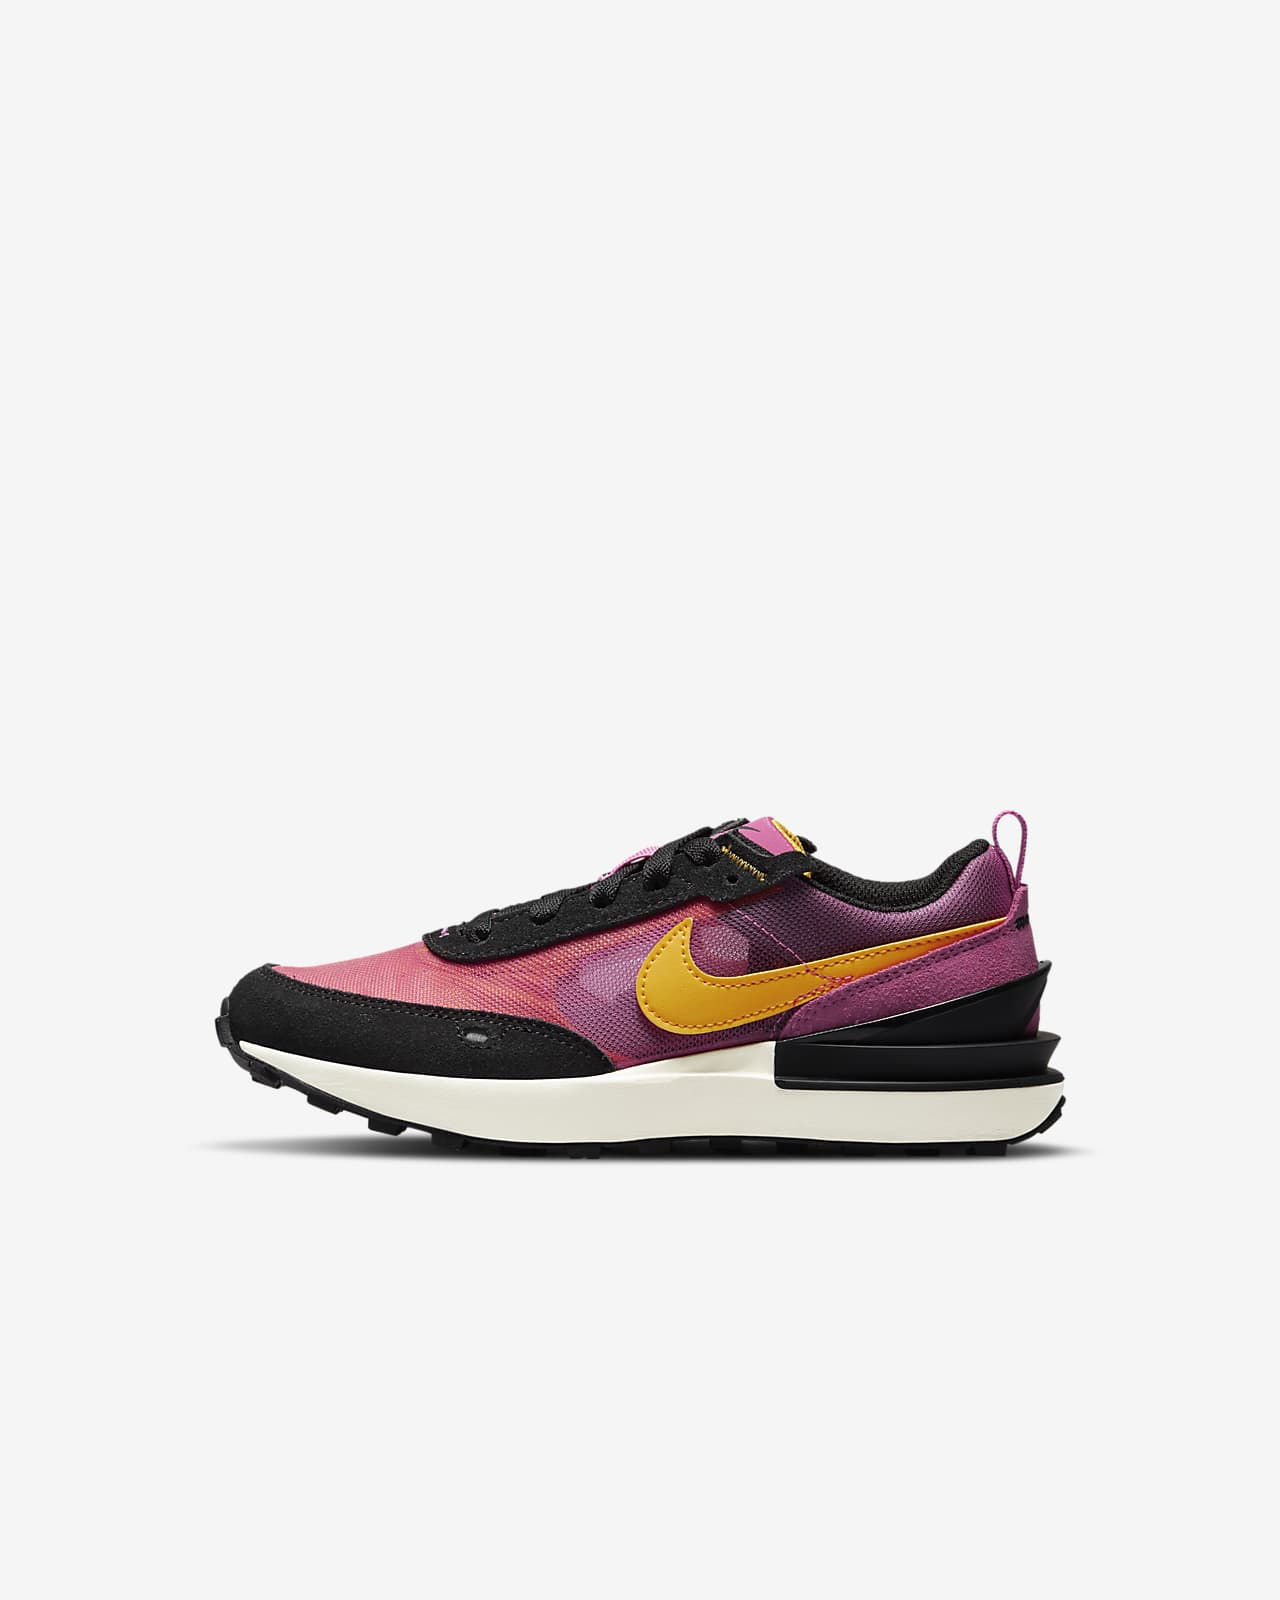 Nike Waffle One Younger Kids' Shoes